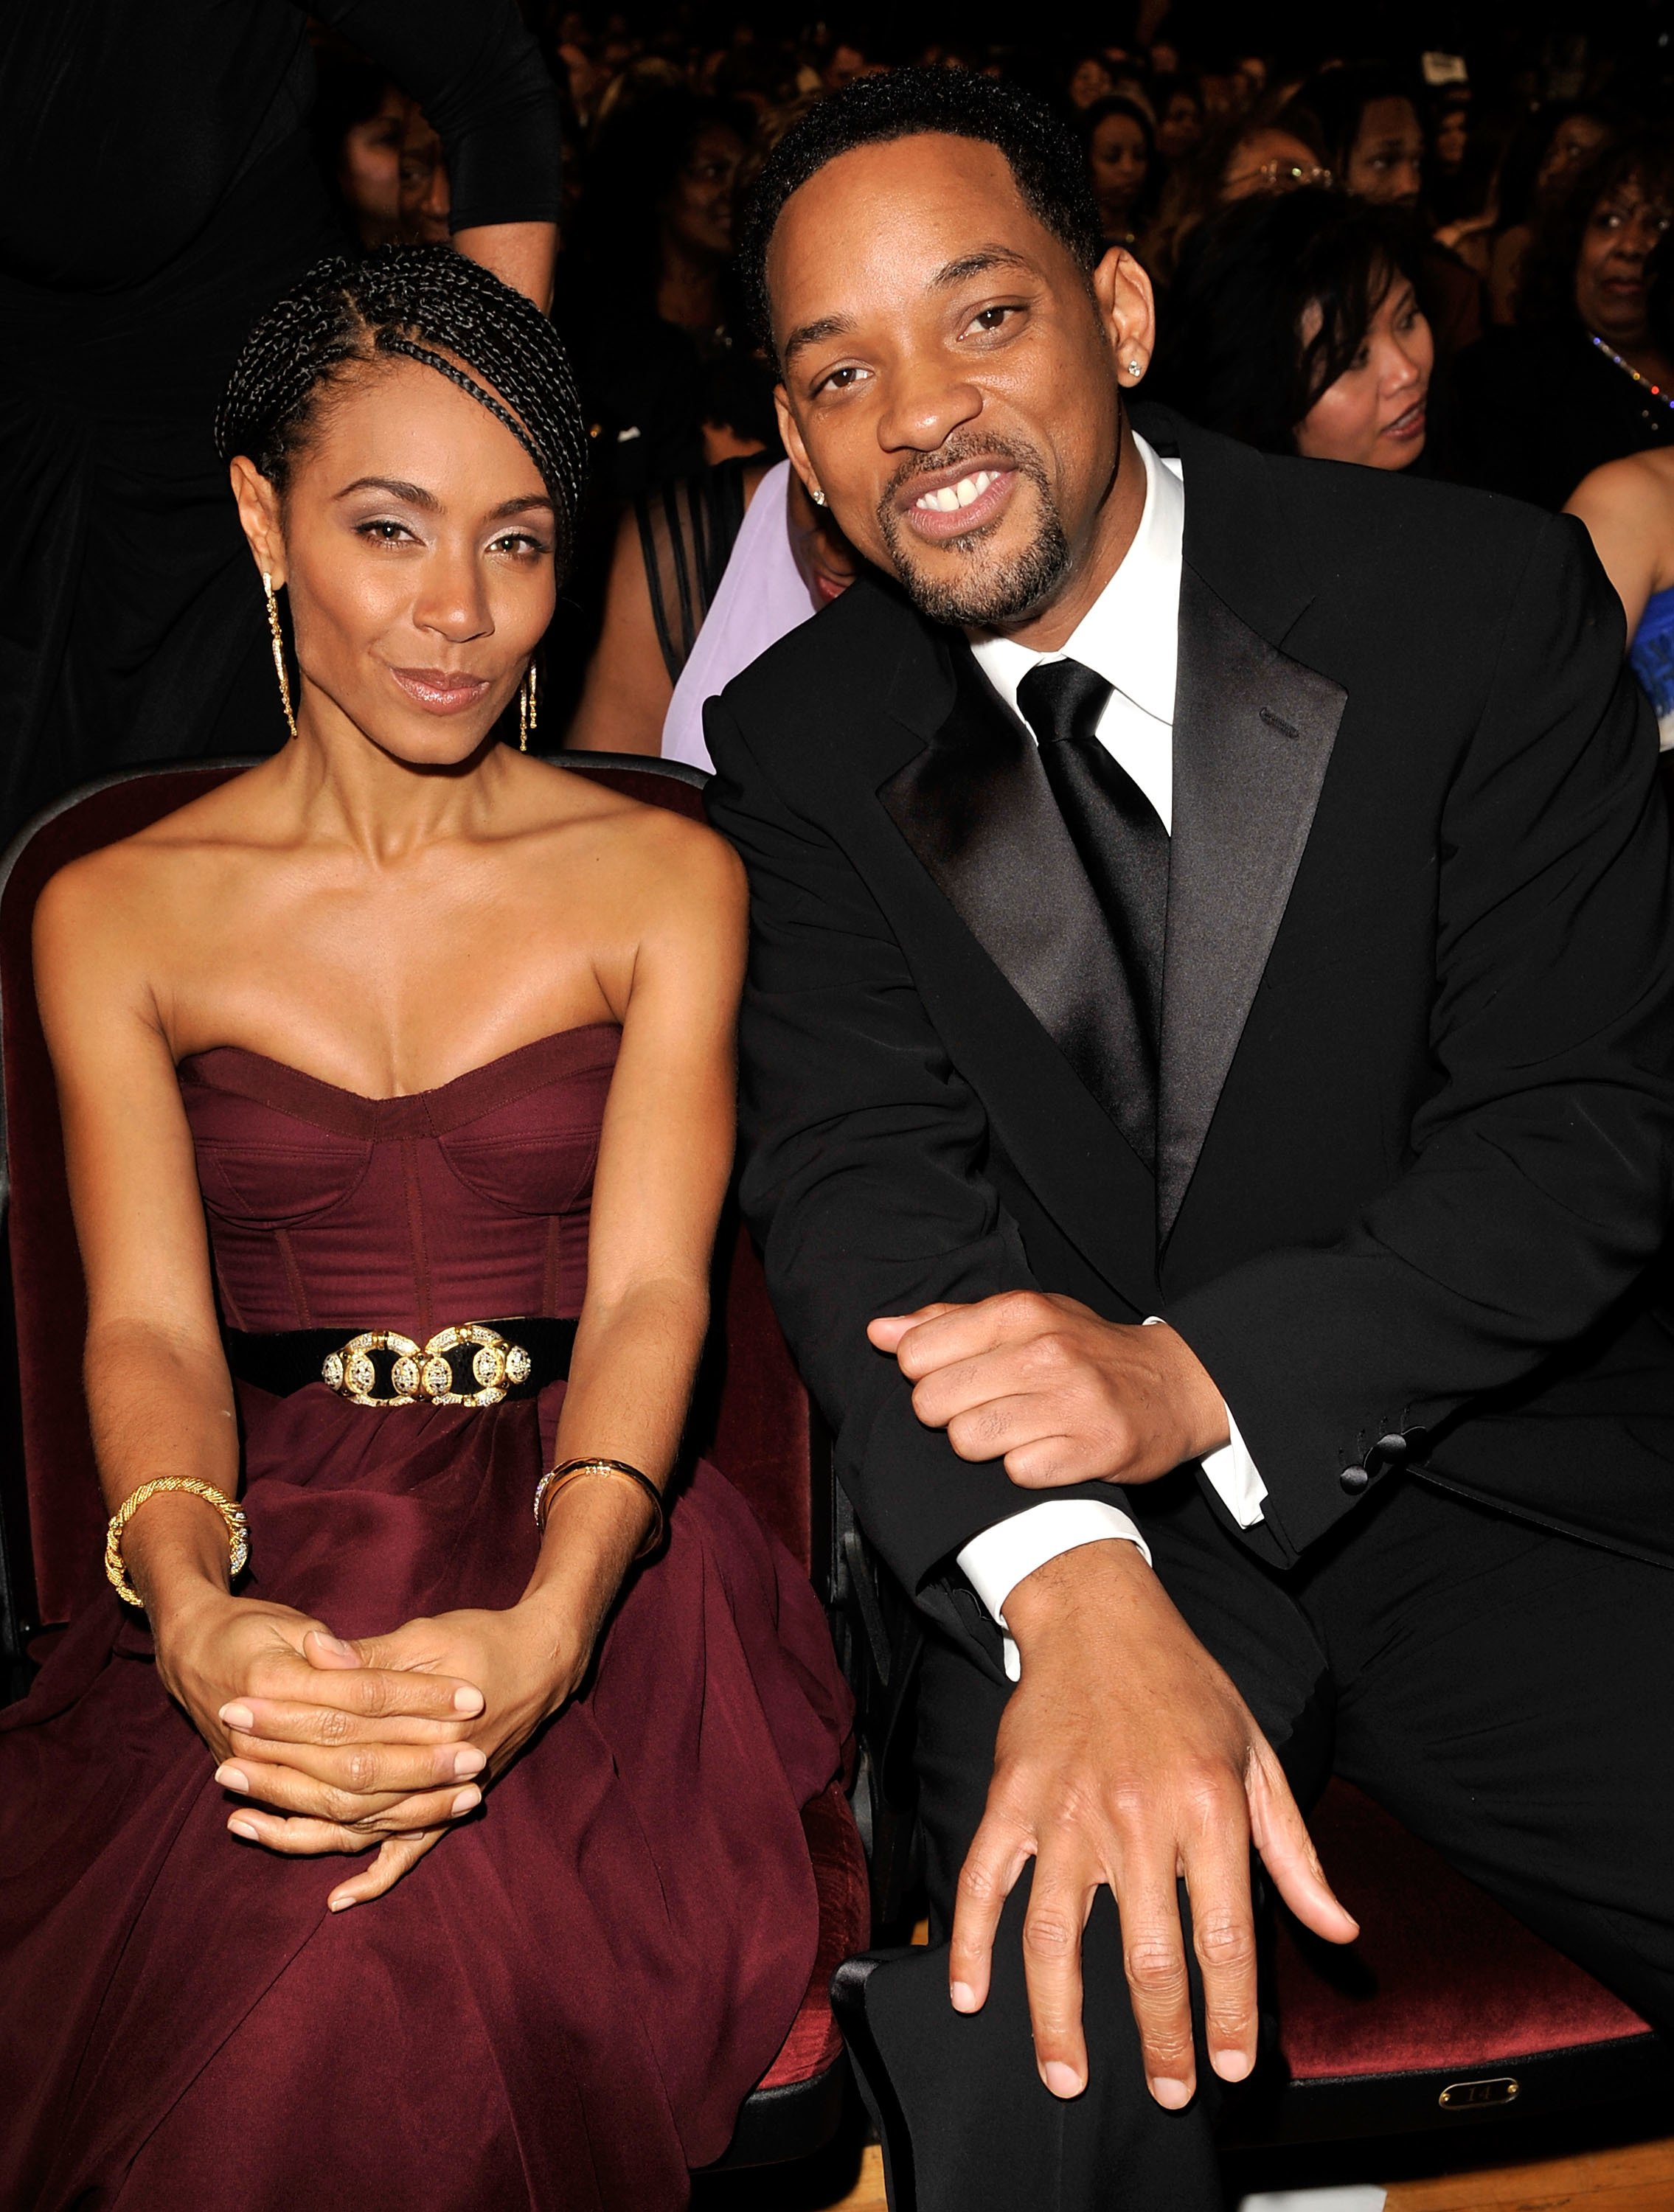 Will Smith and Jada Smith admit having an open grown relationship / Getty Images